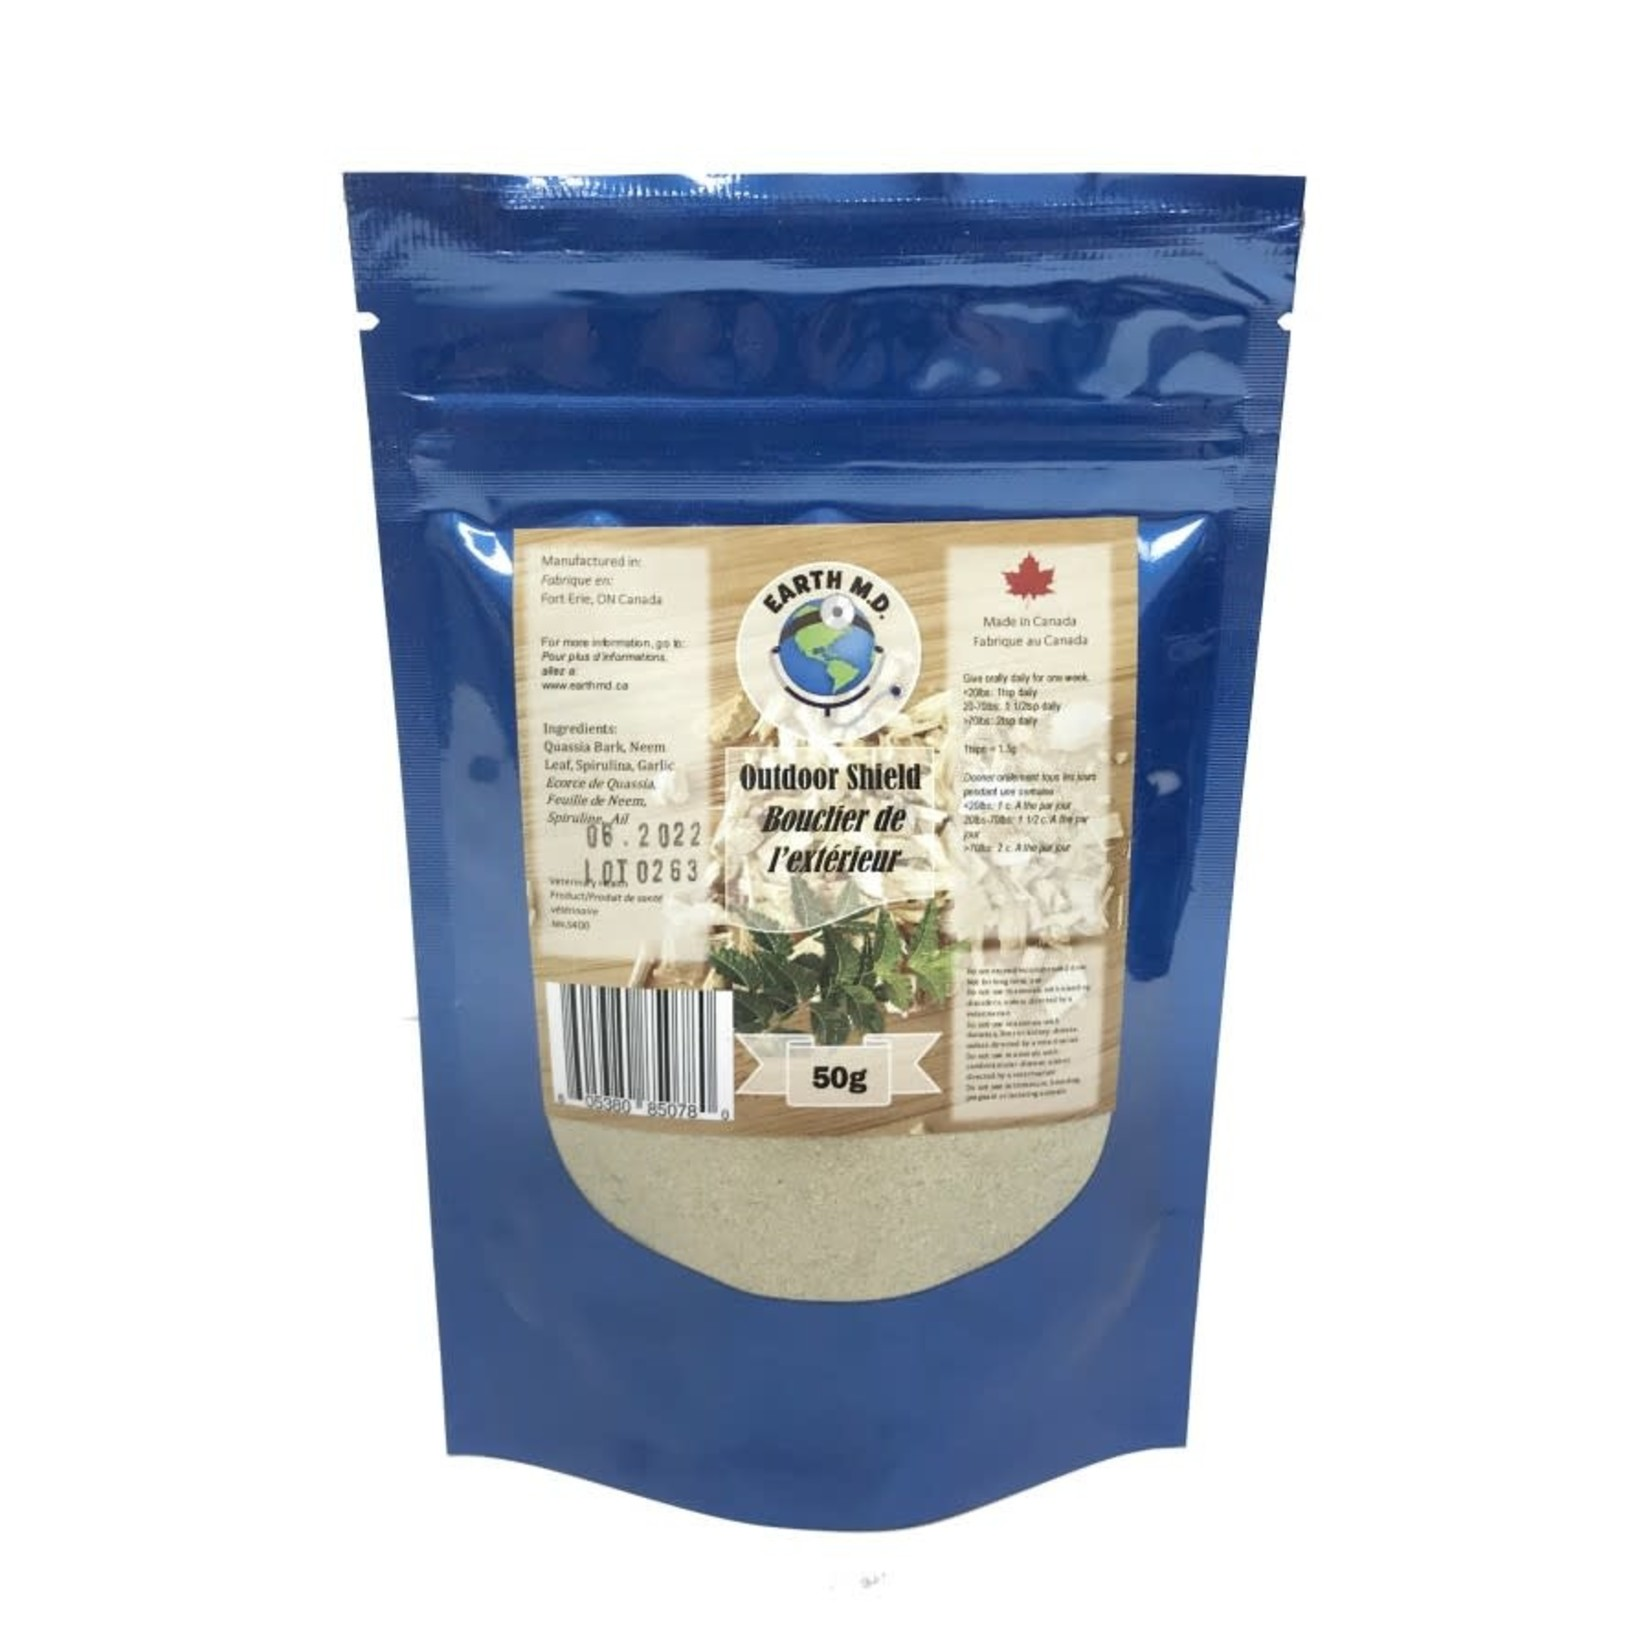 Earth MD EarthMD Flea and Tick Repellent - 50g